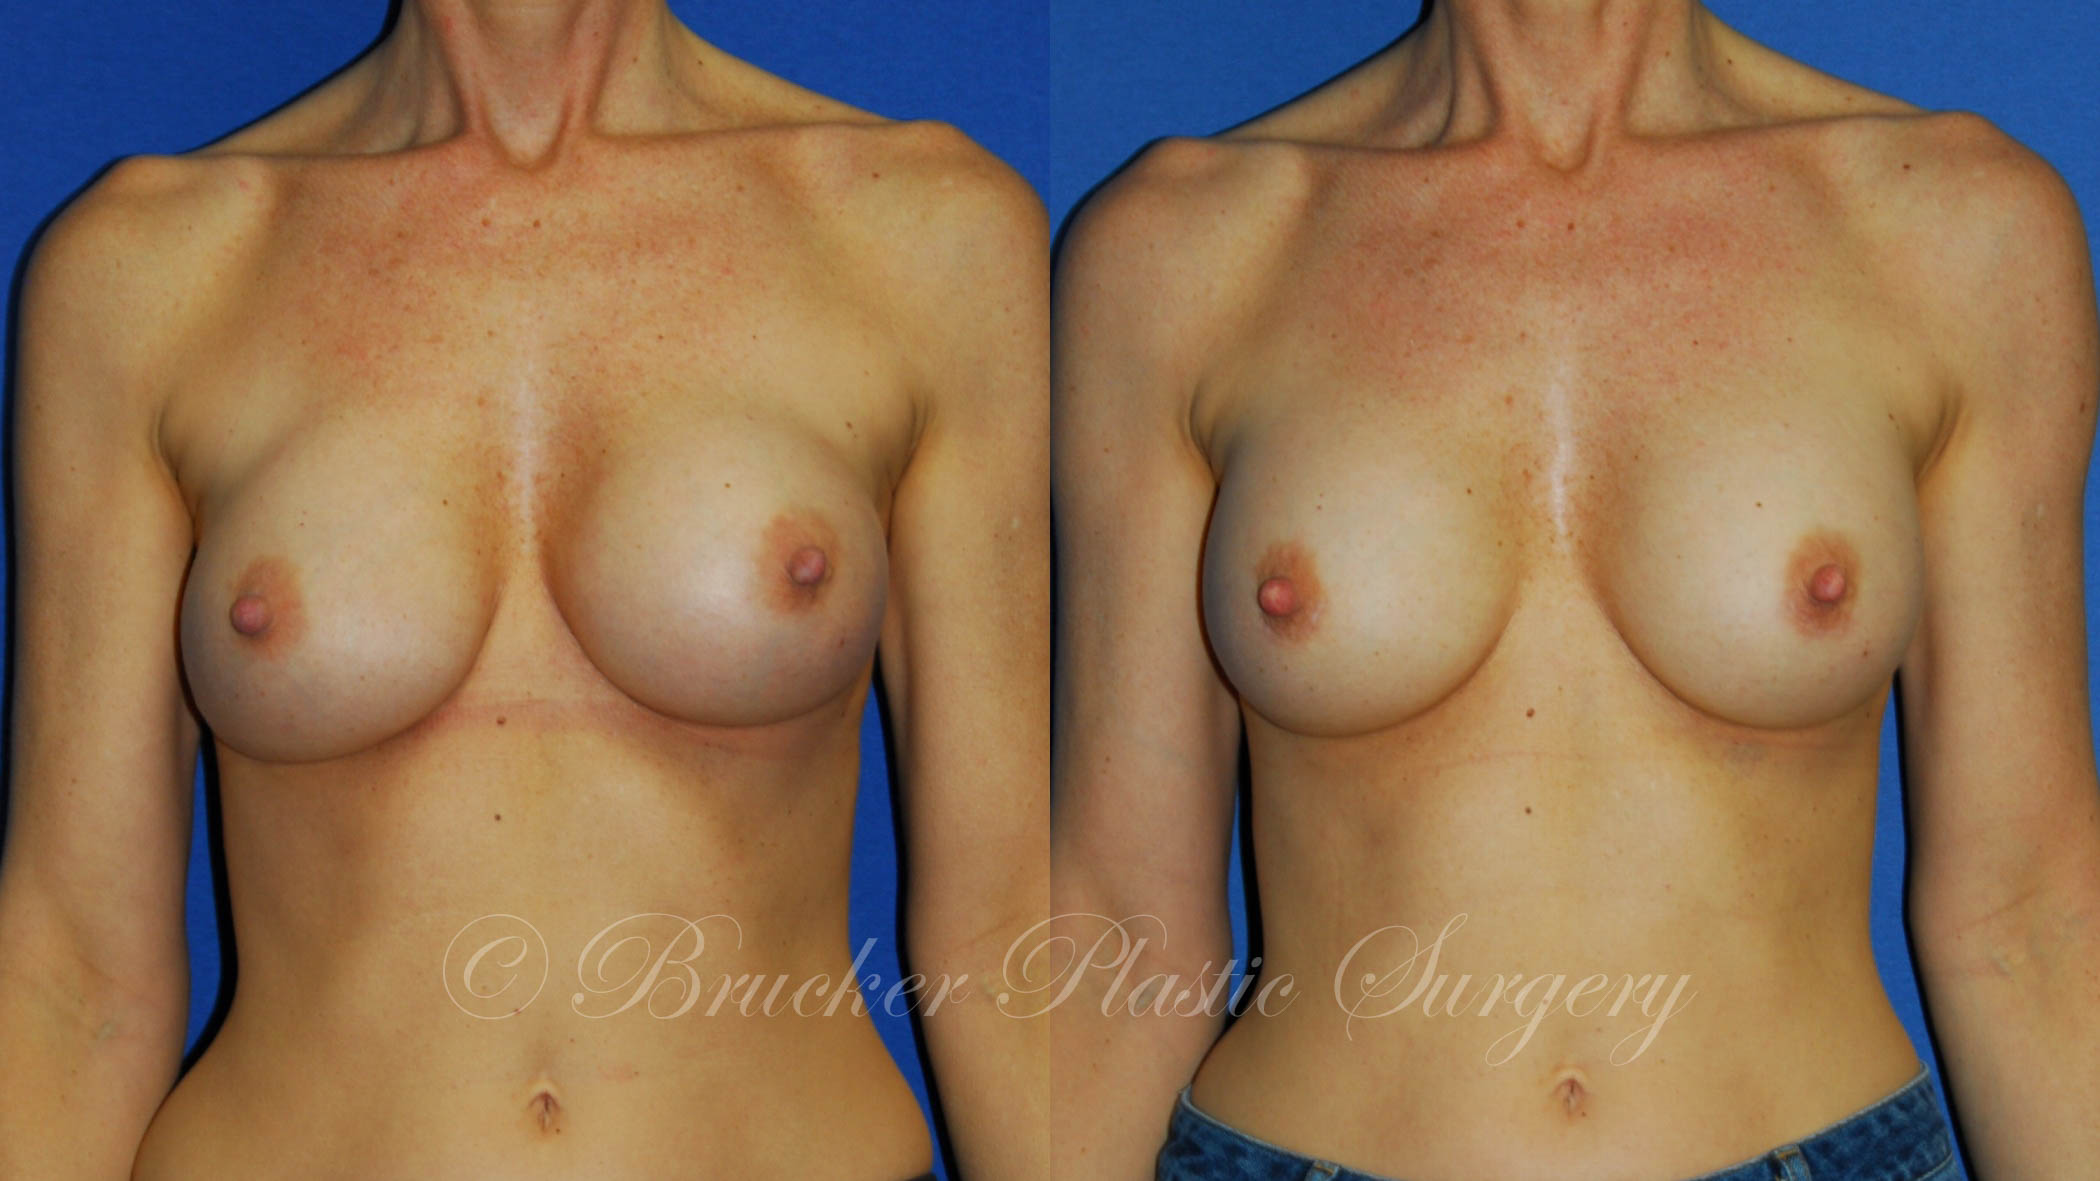 Patient 3a Aesthetic Breast Reconstruction Before and After